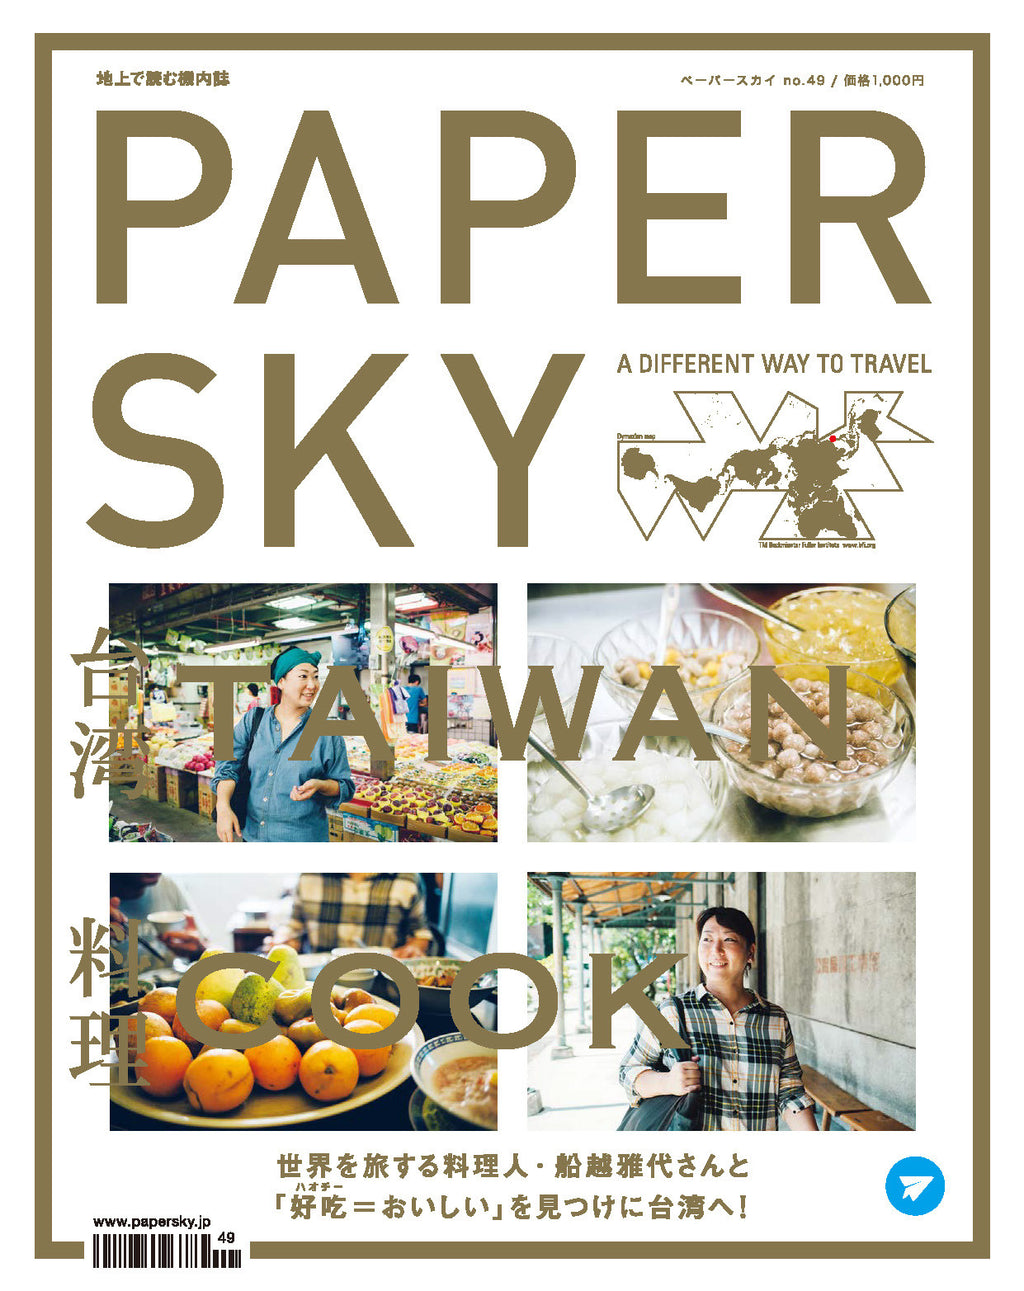 TAIWAN, papersky magaze, i世界を旅する料理人, 船越雅代さん